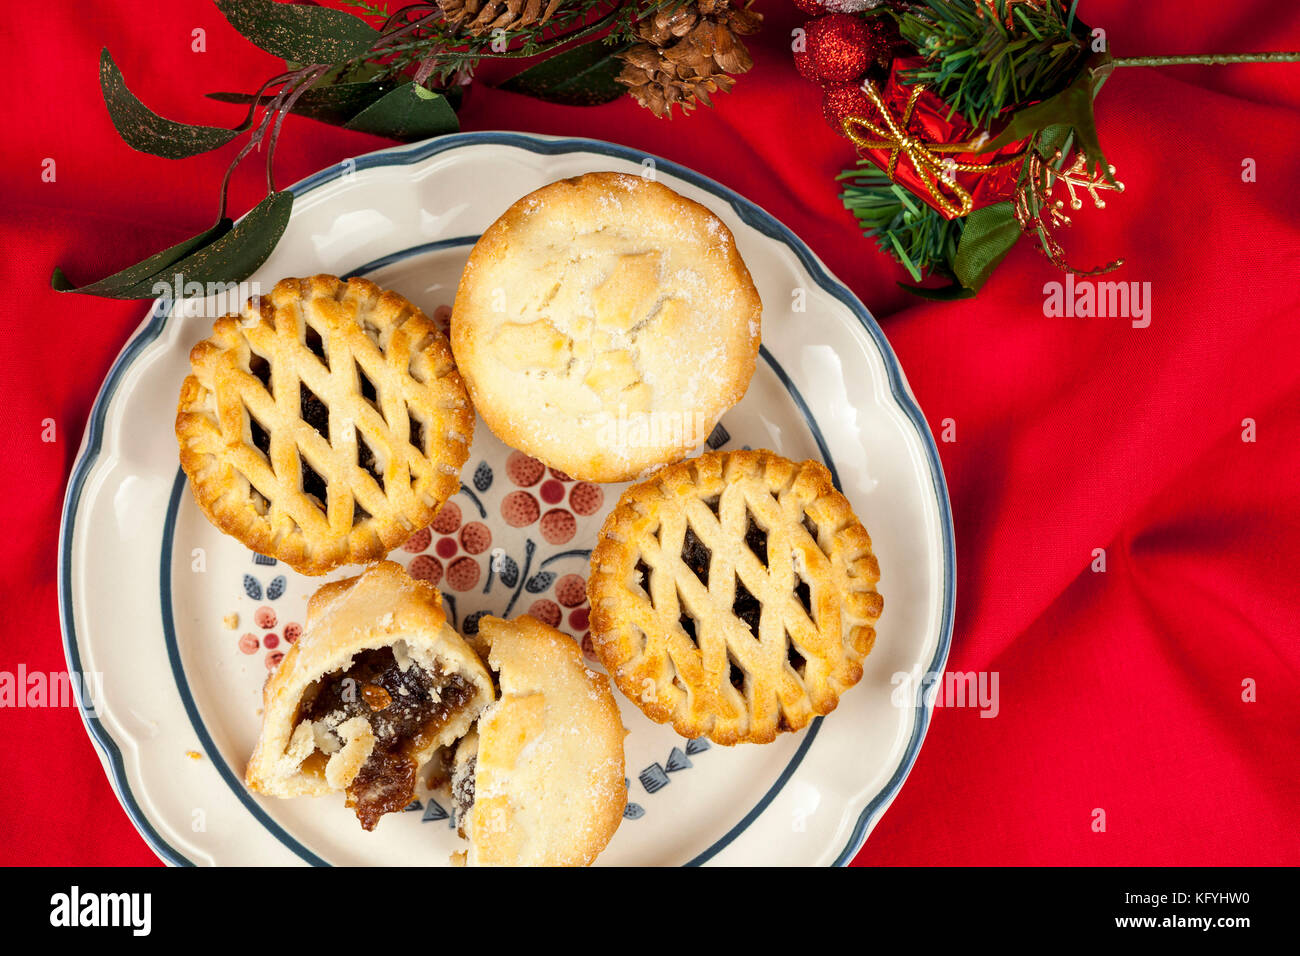 Plated lattice top mince pies at christmas on a ruffled red table cloth with some festive seasonal decorations - Stock Image